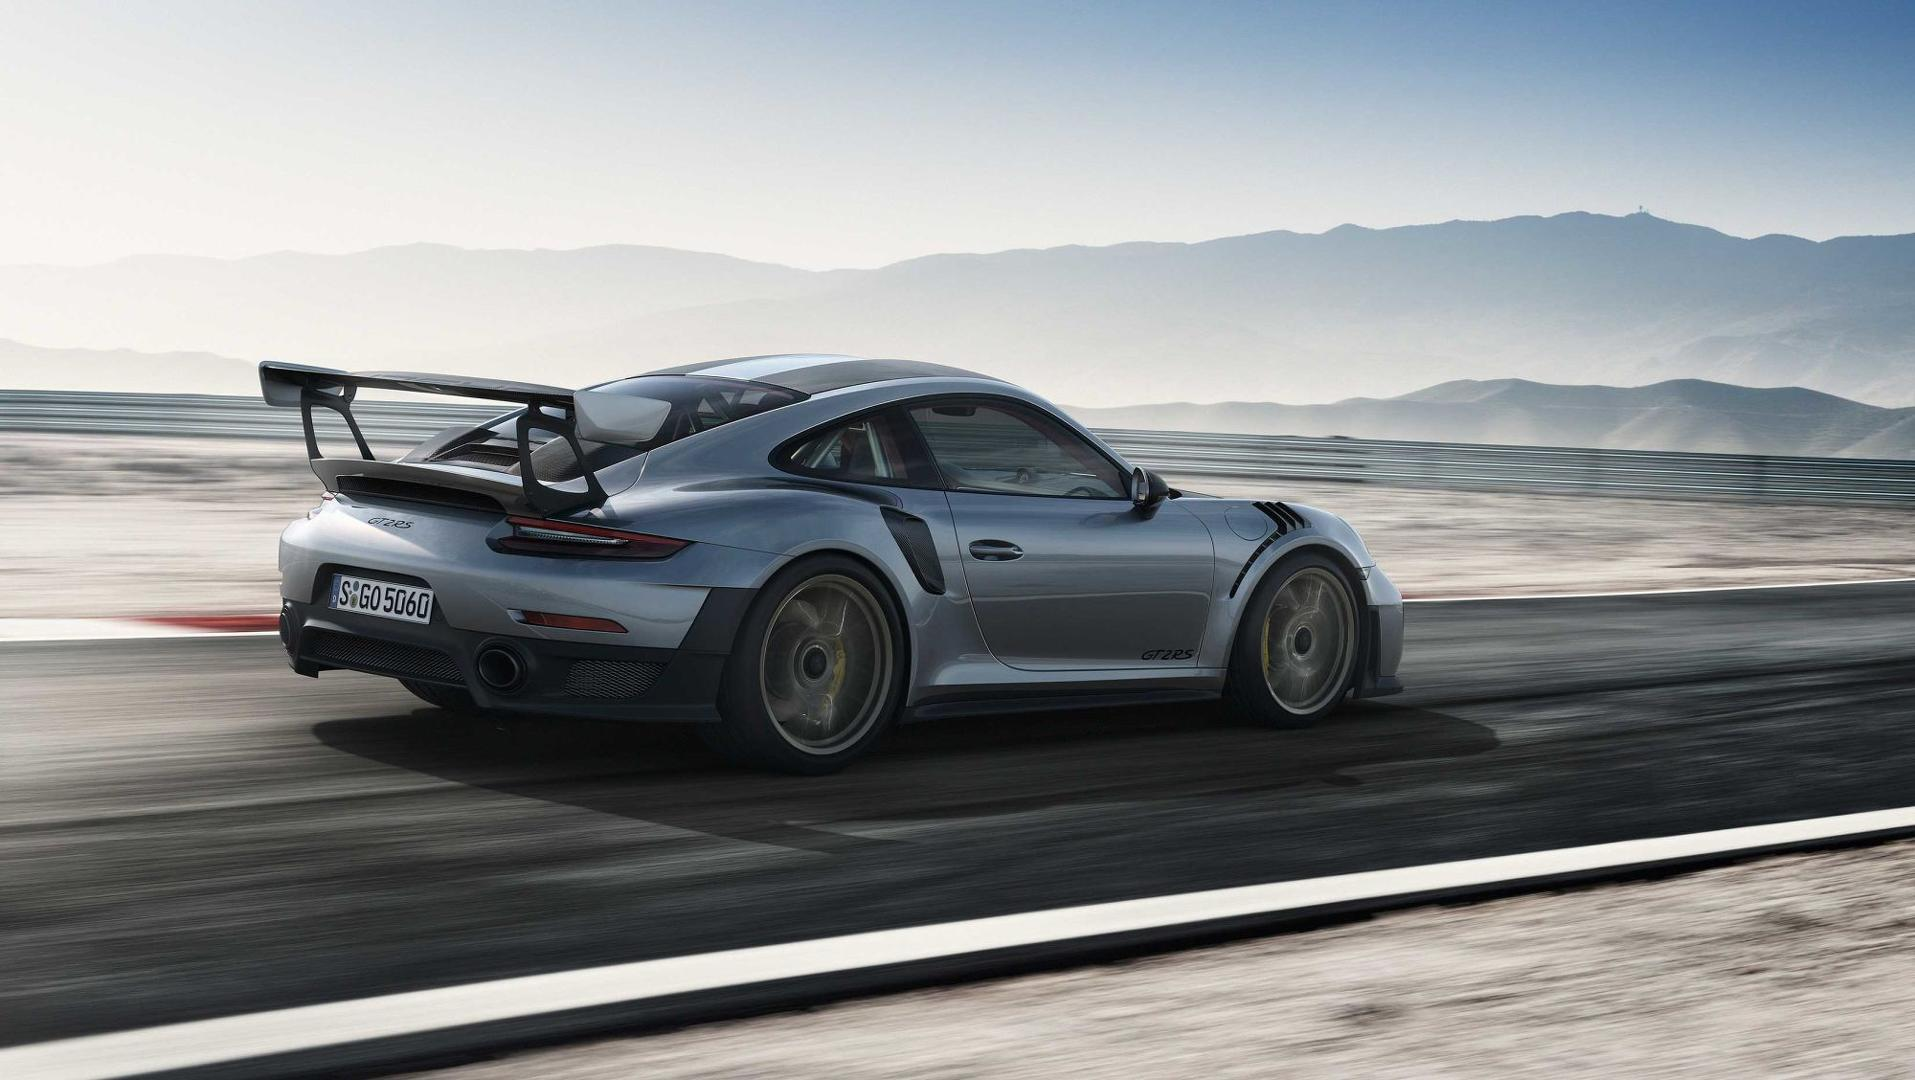 porsche-911-gt2-rs-leaked-official-image (1)